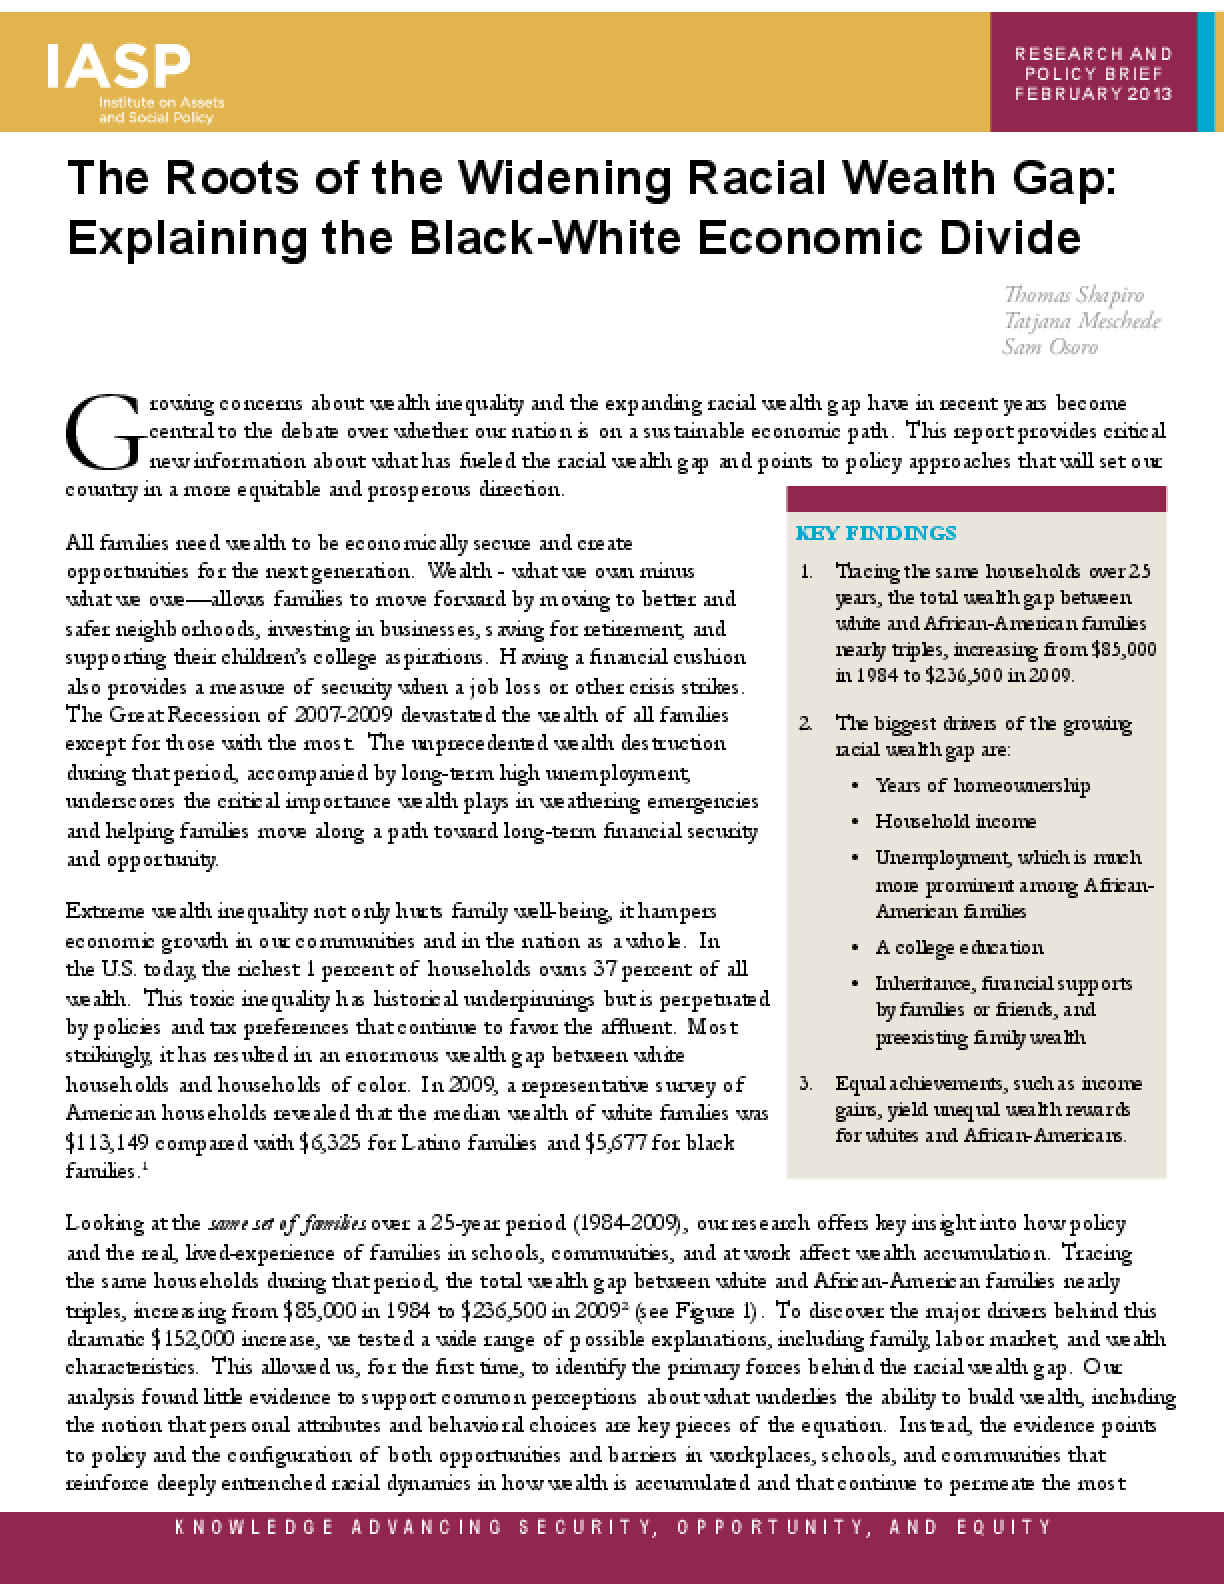 The Roots of the Widening Racial Wealth Gap: Explaining the Black-White Economic Divide